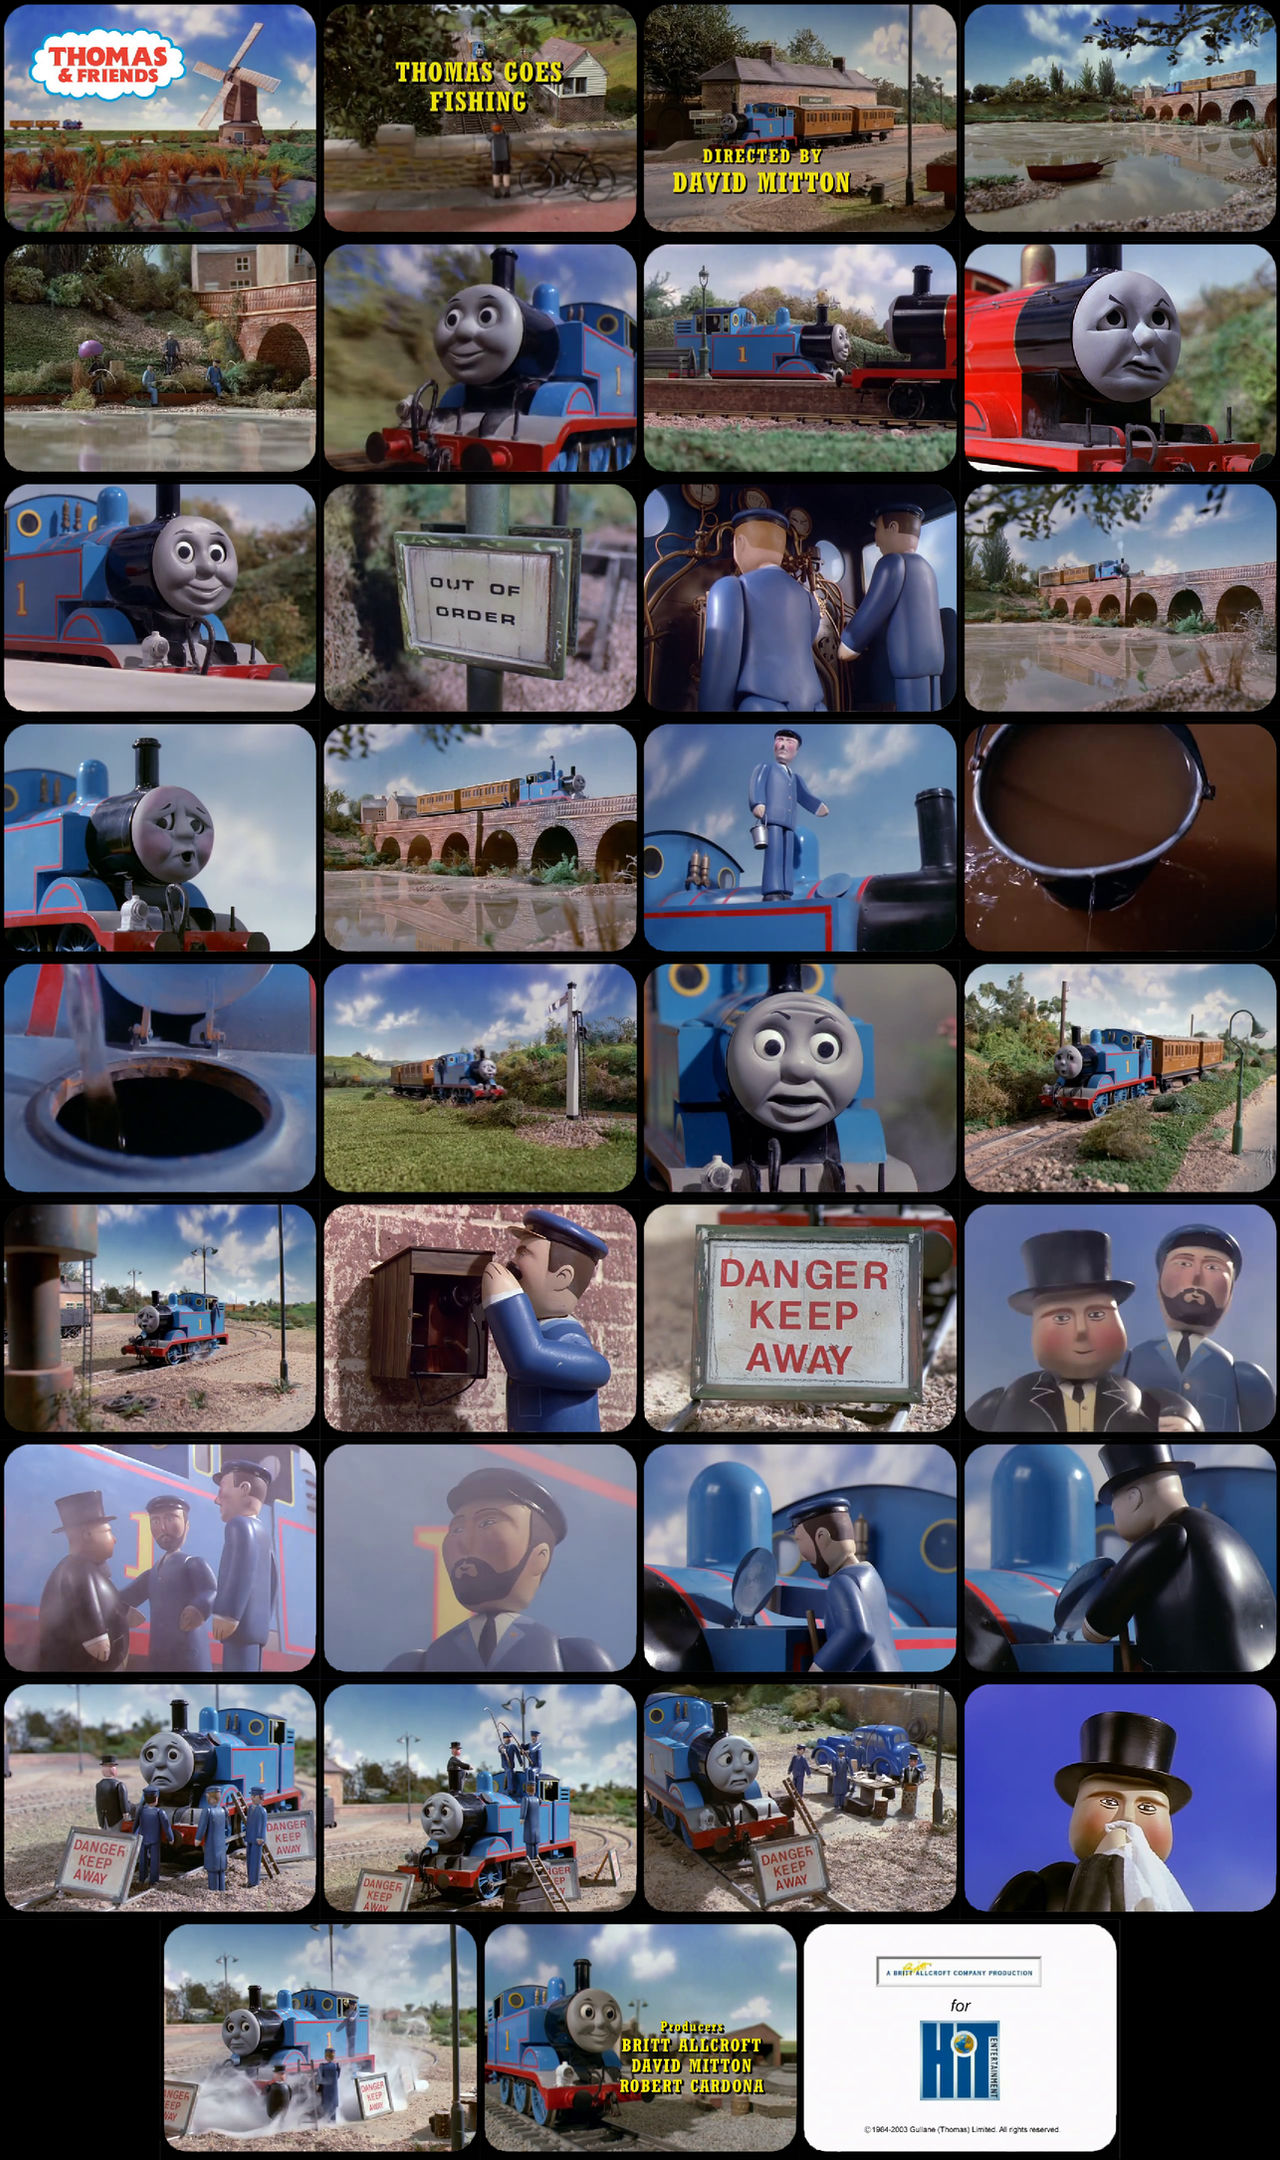 Thomas and Friends Episode 12 Tele-Snaps